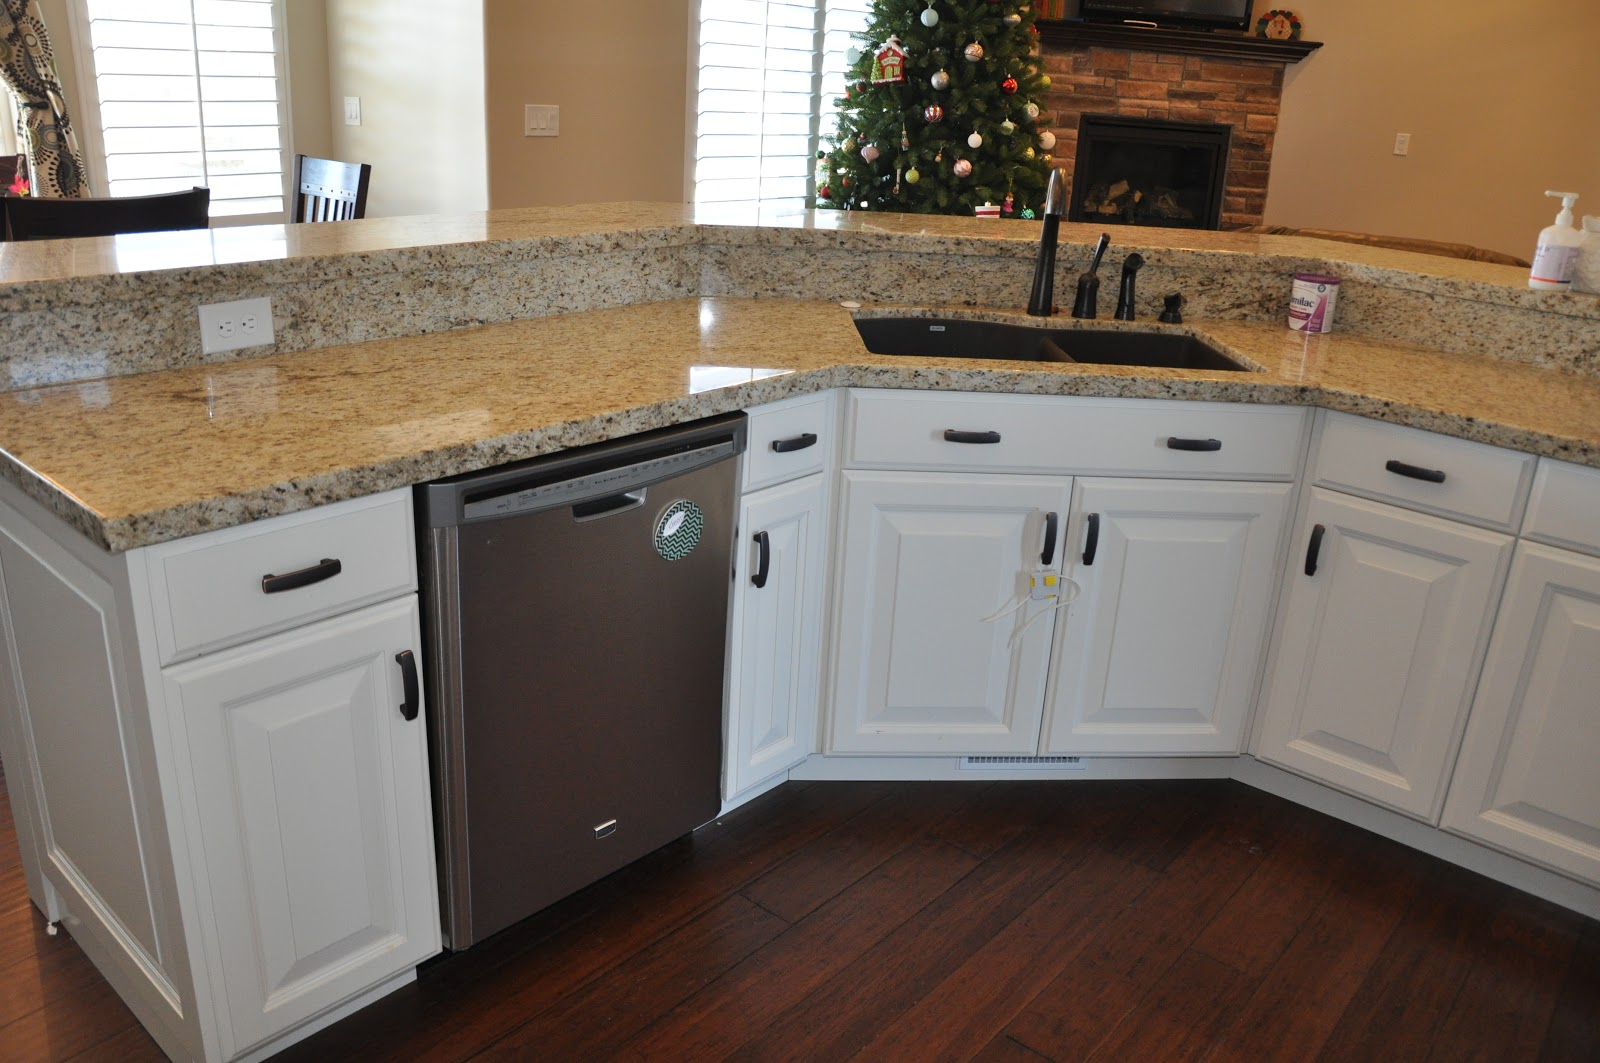 Stone ridge cabinets kitchen cabinets off white with black walnut hood - Kitchen images with white cabinets ...